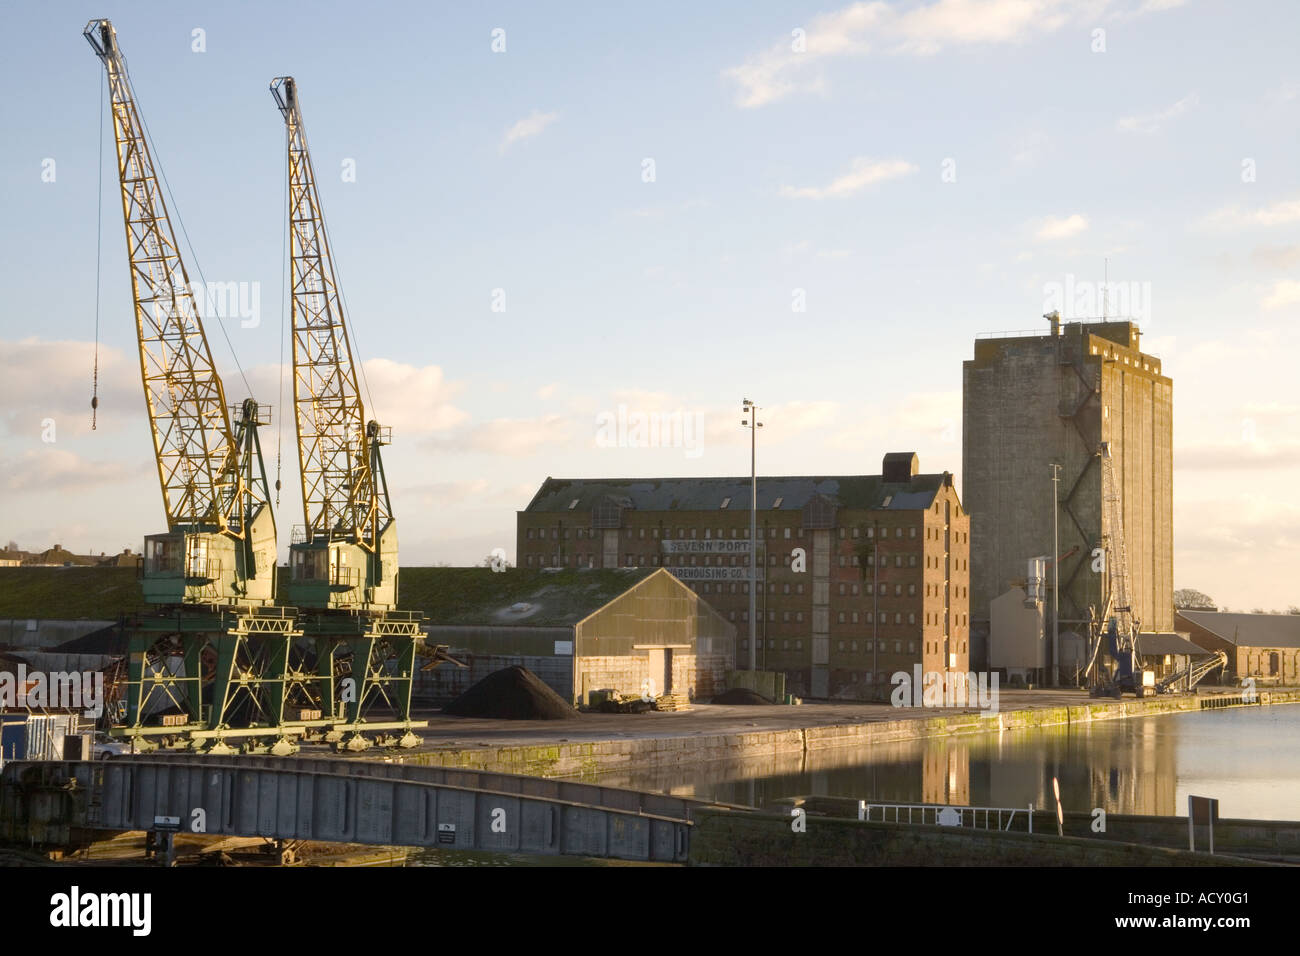 sharpness docks on the banks of the river severn in gloucestershire - Stock Image